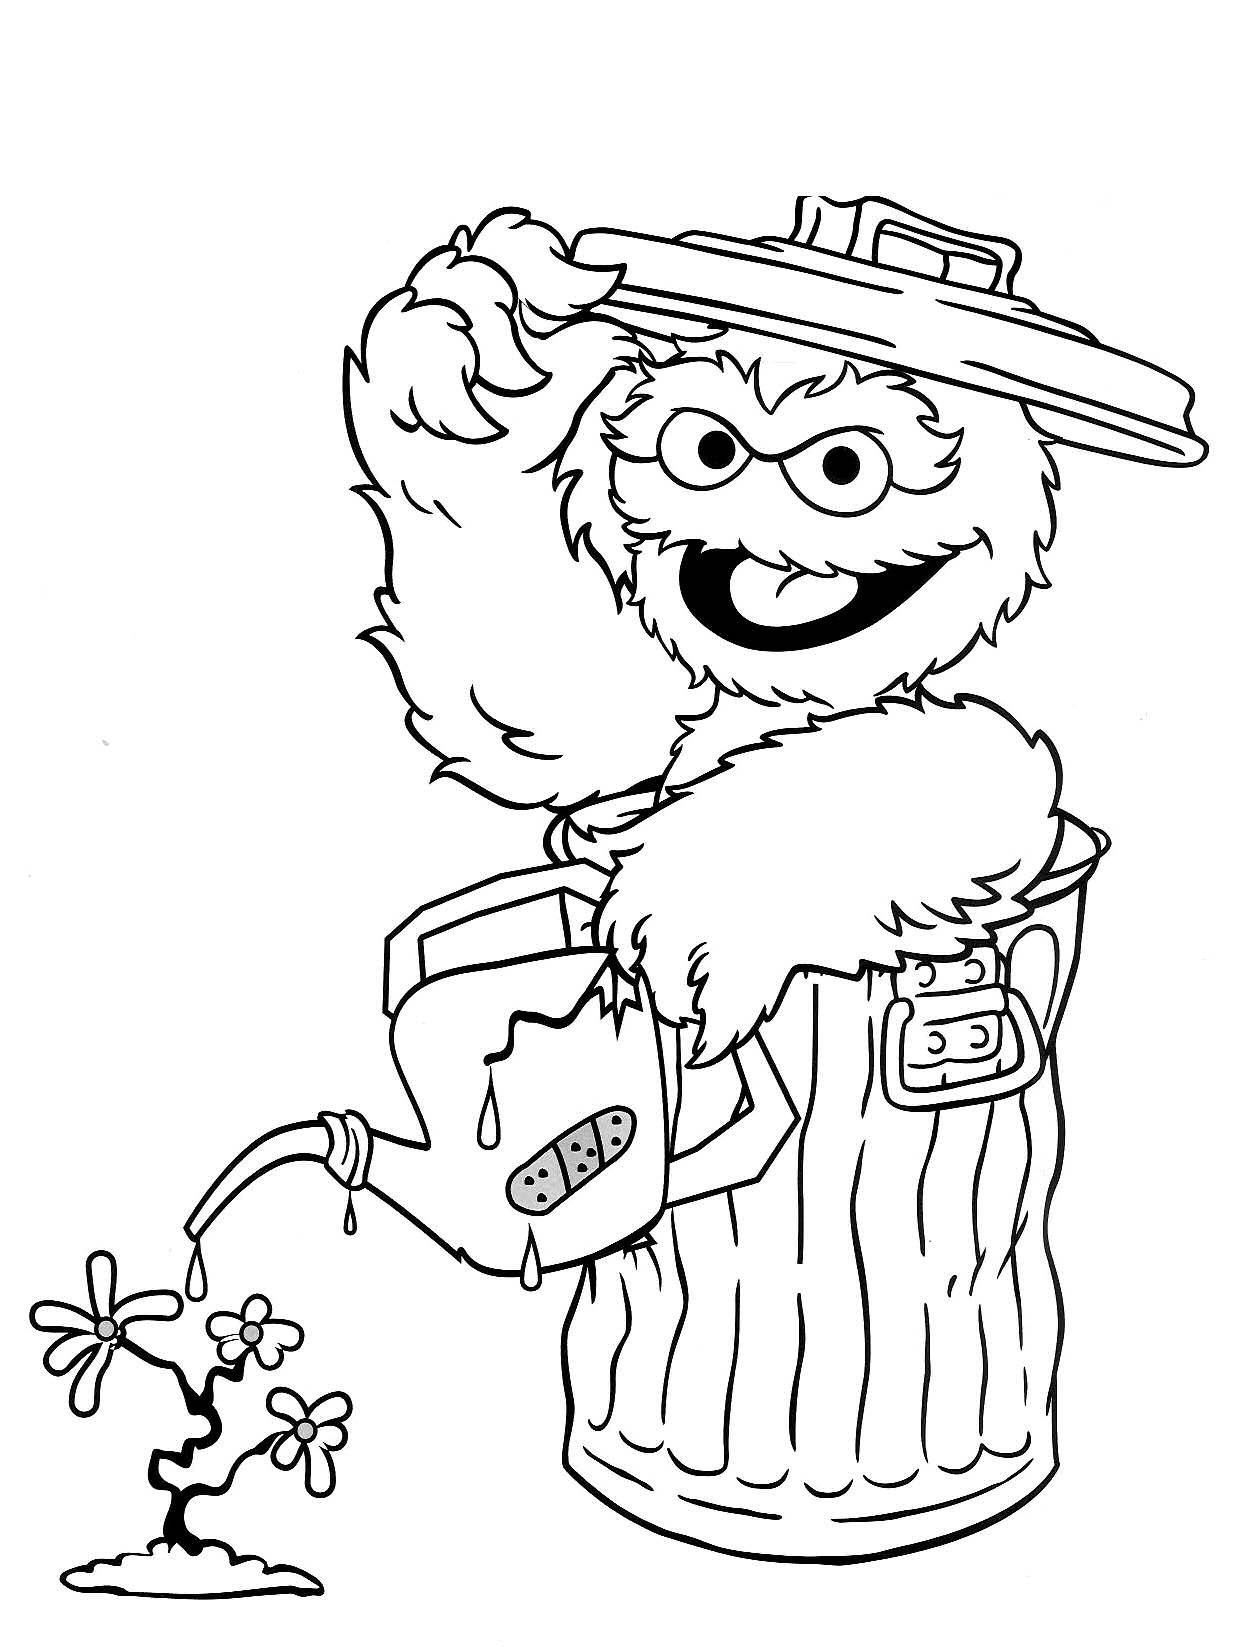 sesame street elmo coloring pages - Sesame Street Coloring Pages Elmo